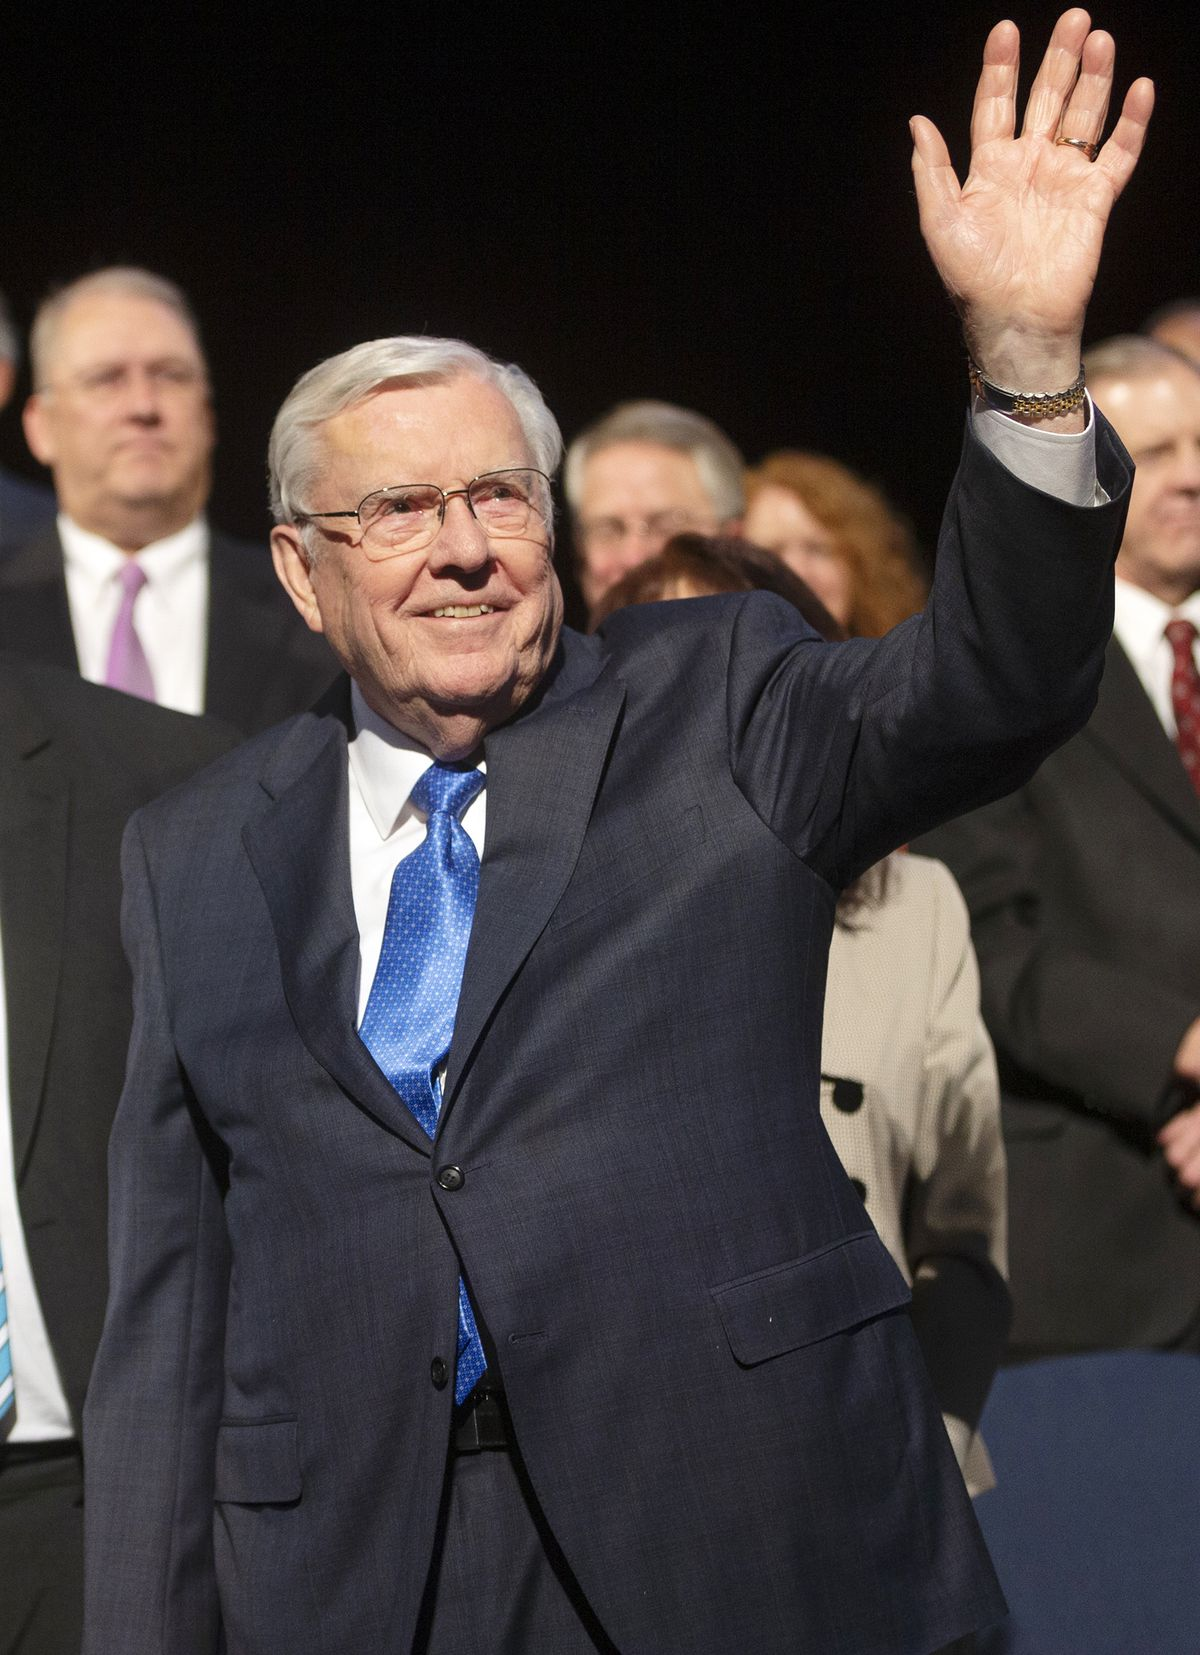 President M. Russell Ballard, acting president of the Quorum of the Twelve Apostles of The Church of Jesus Christ of Latter–day Saints, waves to the crowd as he exits the stand after speaking at a BYU devotional in the Marriott Center in Provo on Tuesday, March 3, 2020.